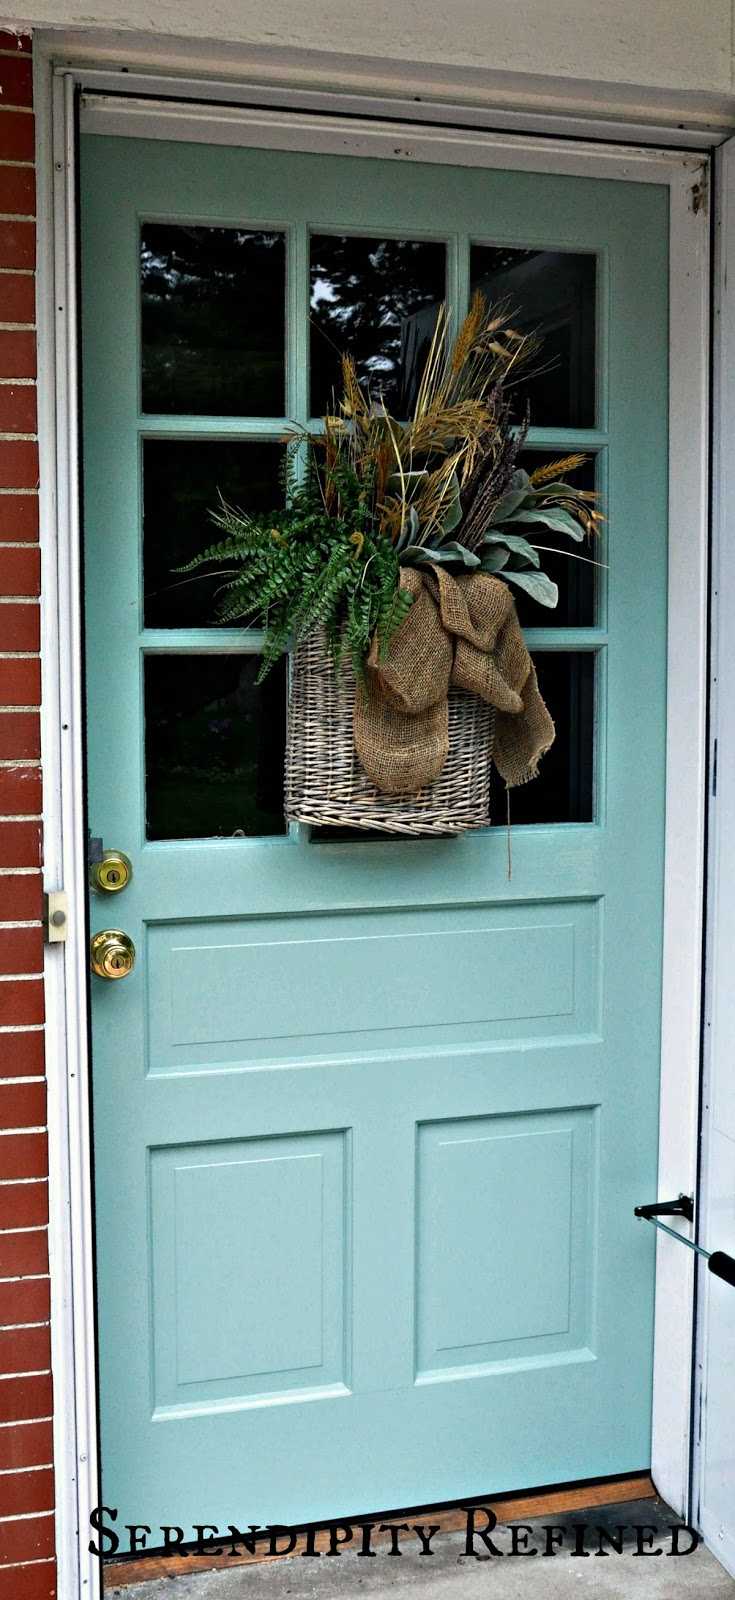 Serendipity Refined Blog: Turquoise Painted Wood Exterior ...